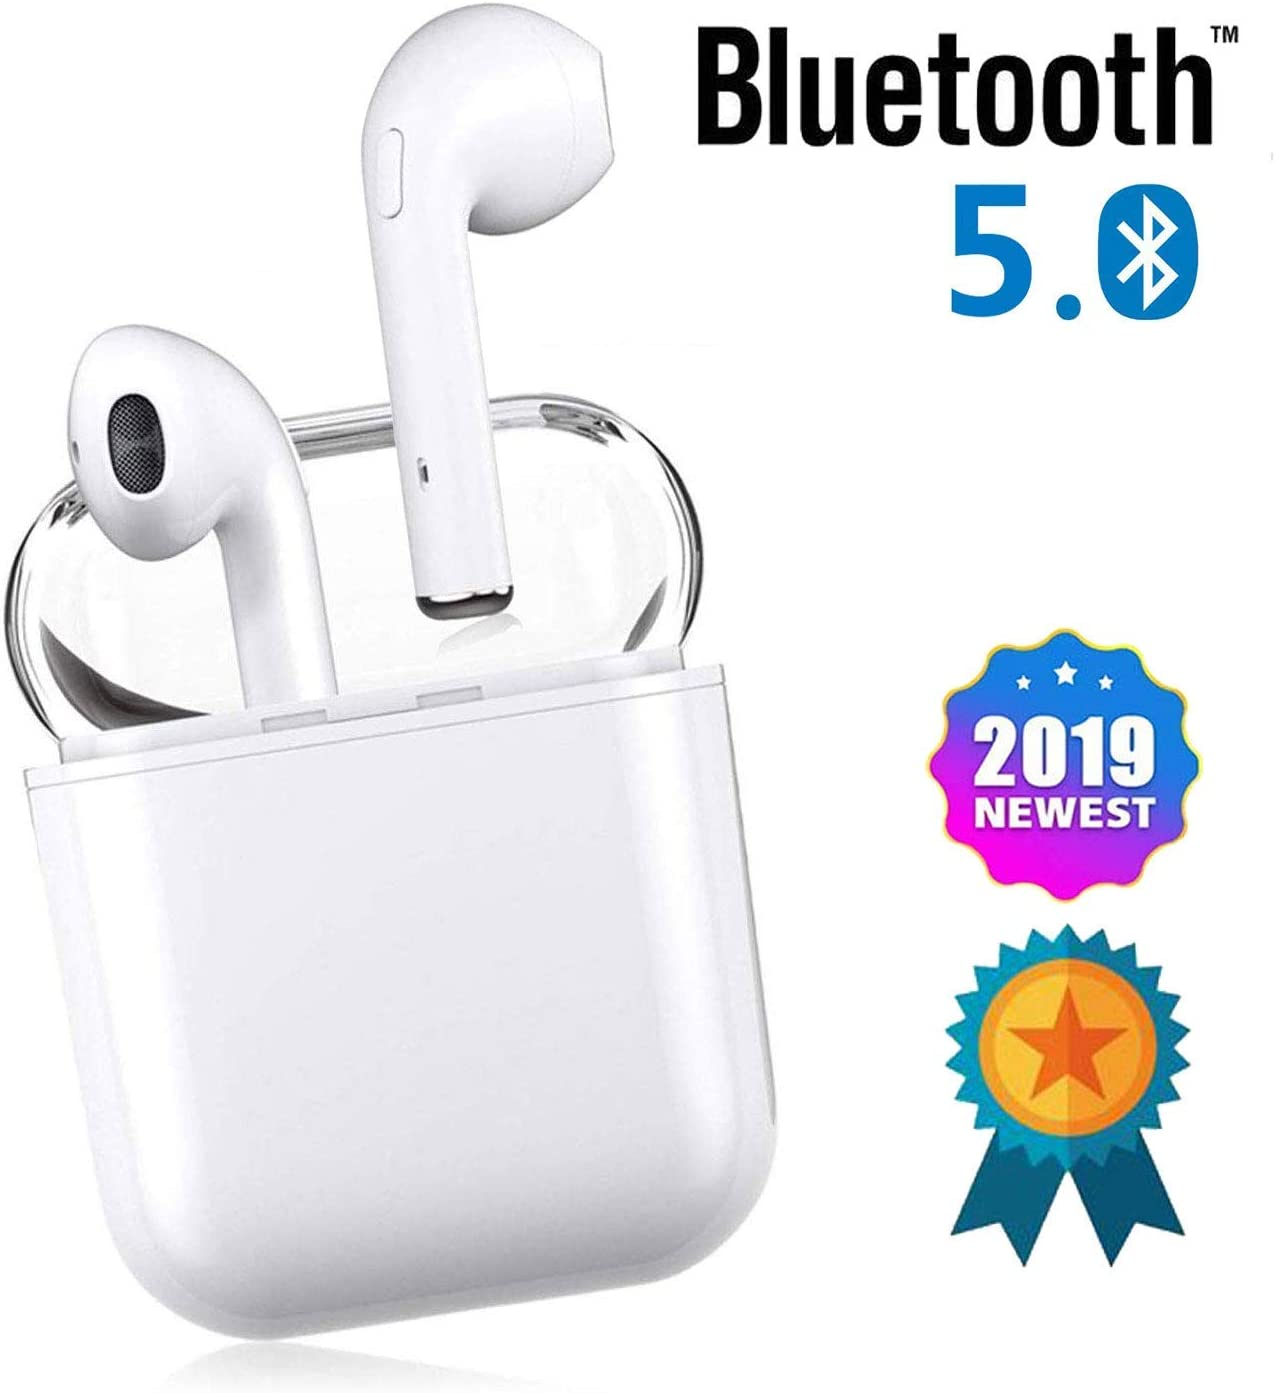 UURM K Bluetooth Headphones,Bluetooth 5.0 Wireless Earbuds,Noise Canceling 3D Stereo IPX5 Waterproof Sports Headset, with 24Hrs Charging Case Fast Charging for Samsung iPhone Android Apple Airpods